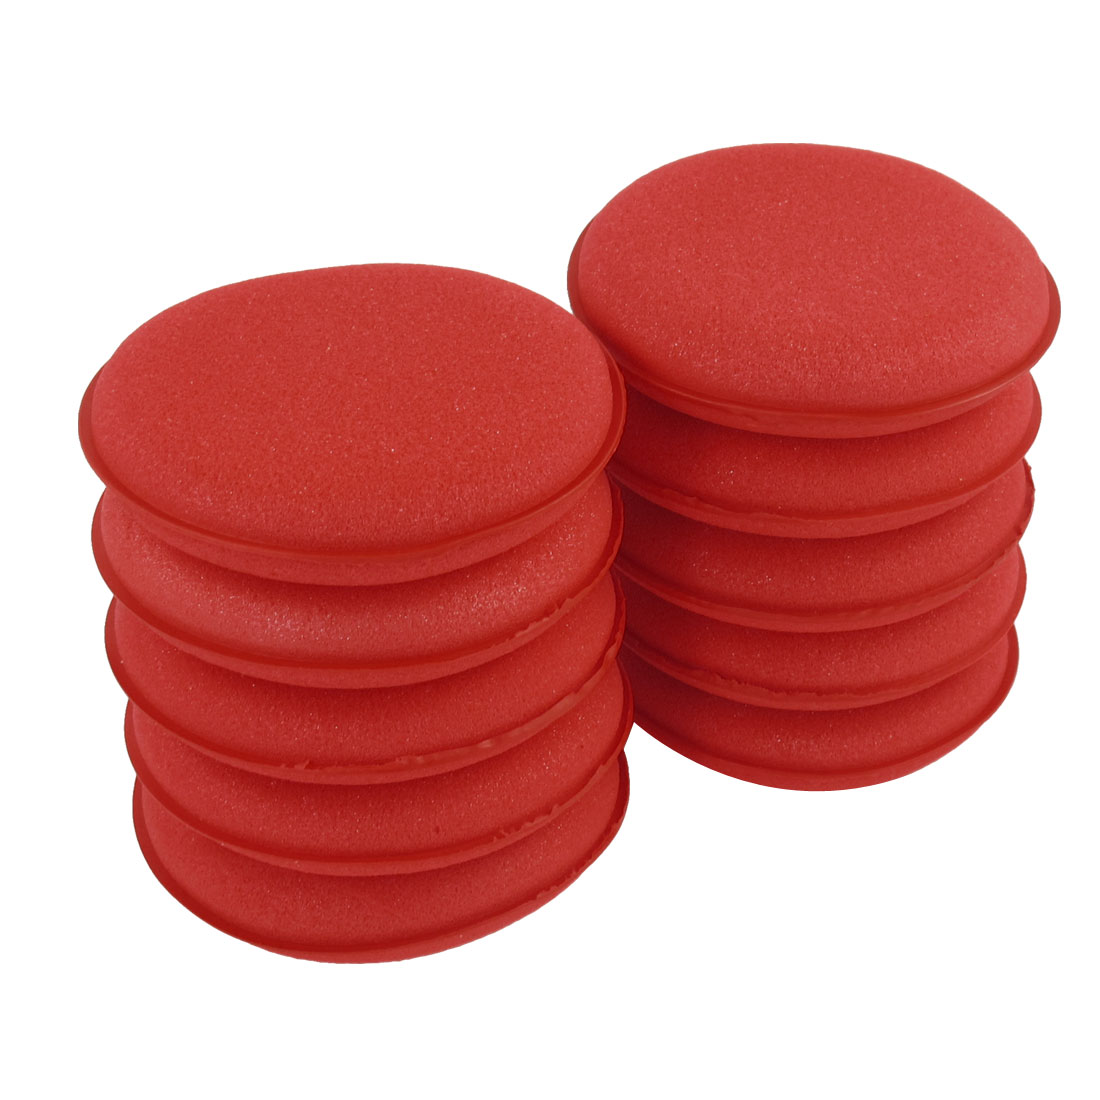 10 Pcs Round Red Soft Sponge Wax Waxing Polishing Wheel 10cm Dia for Auto